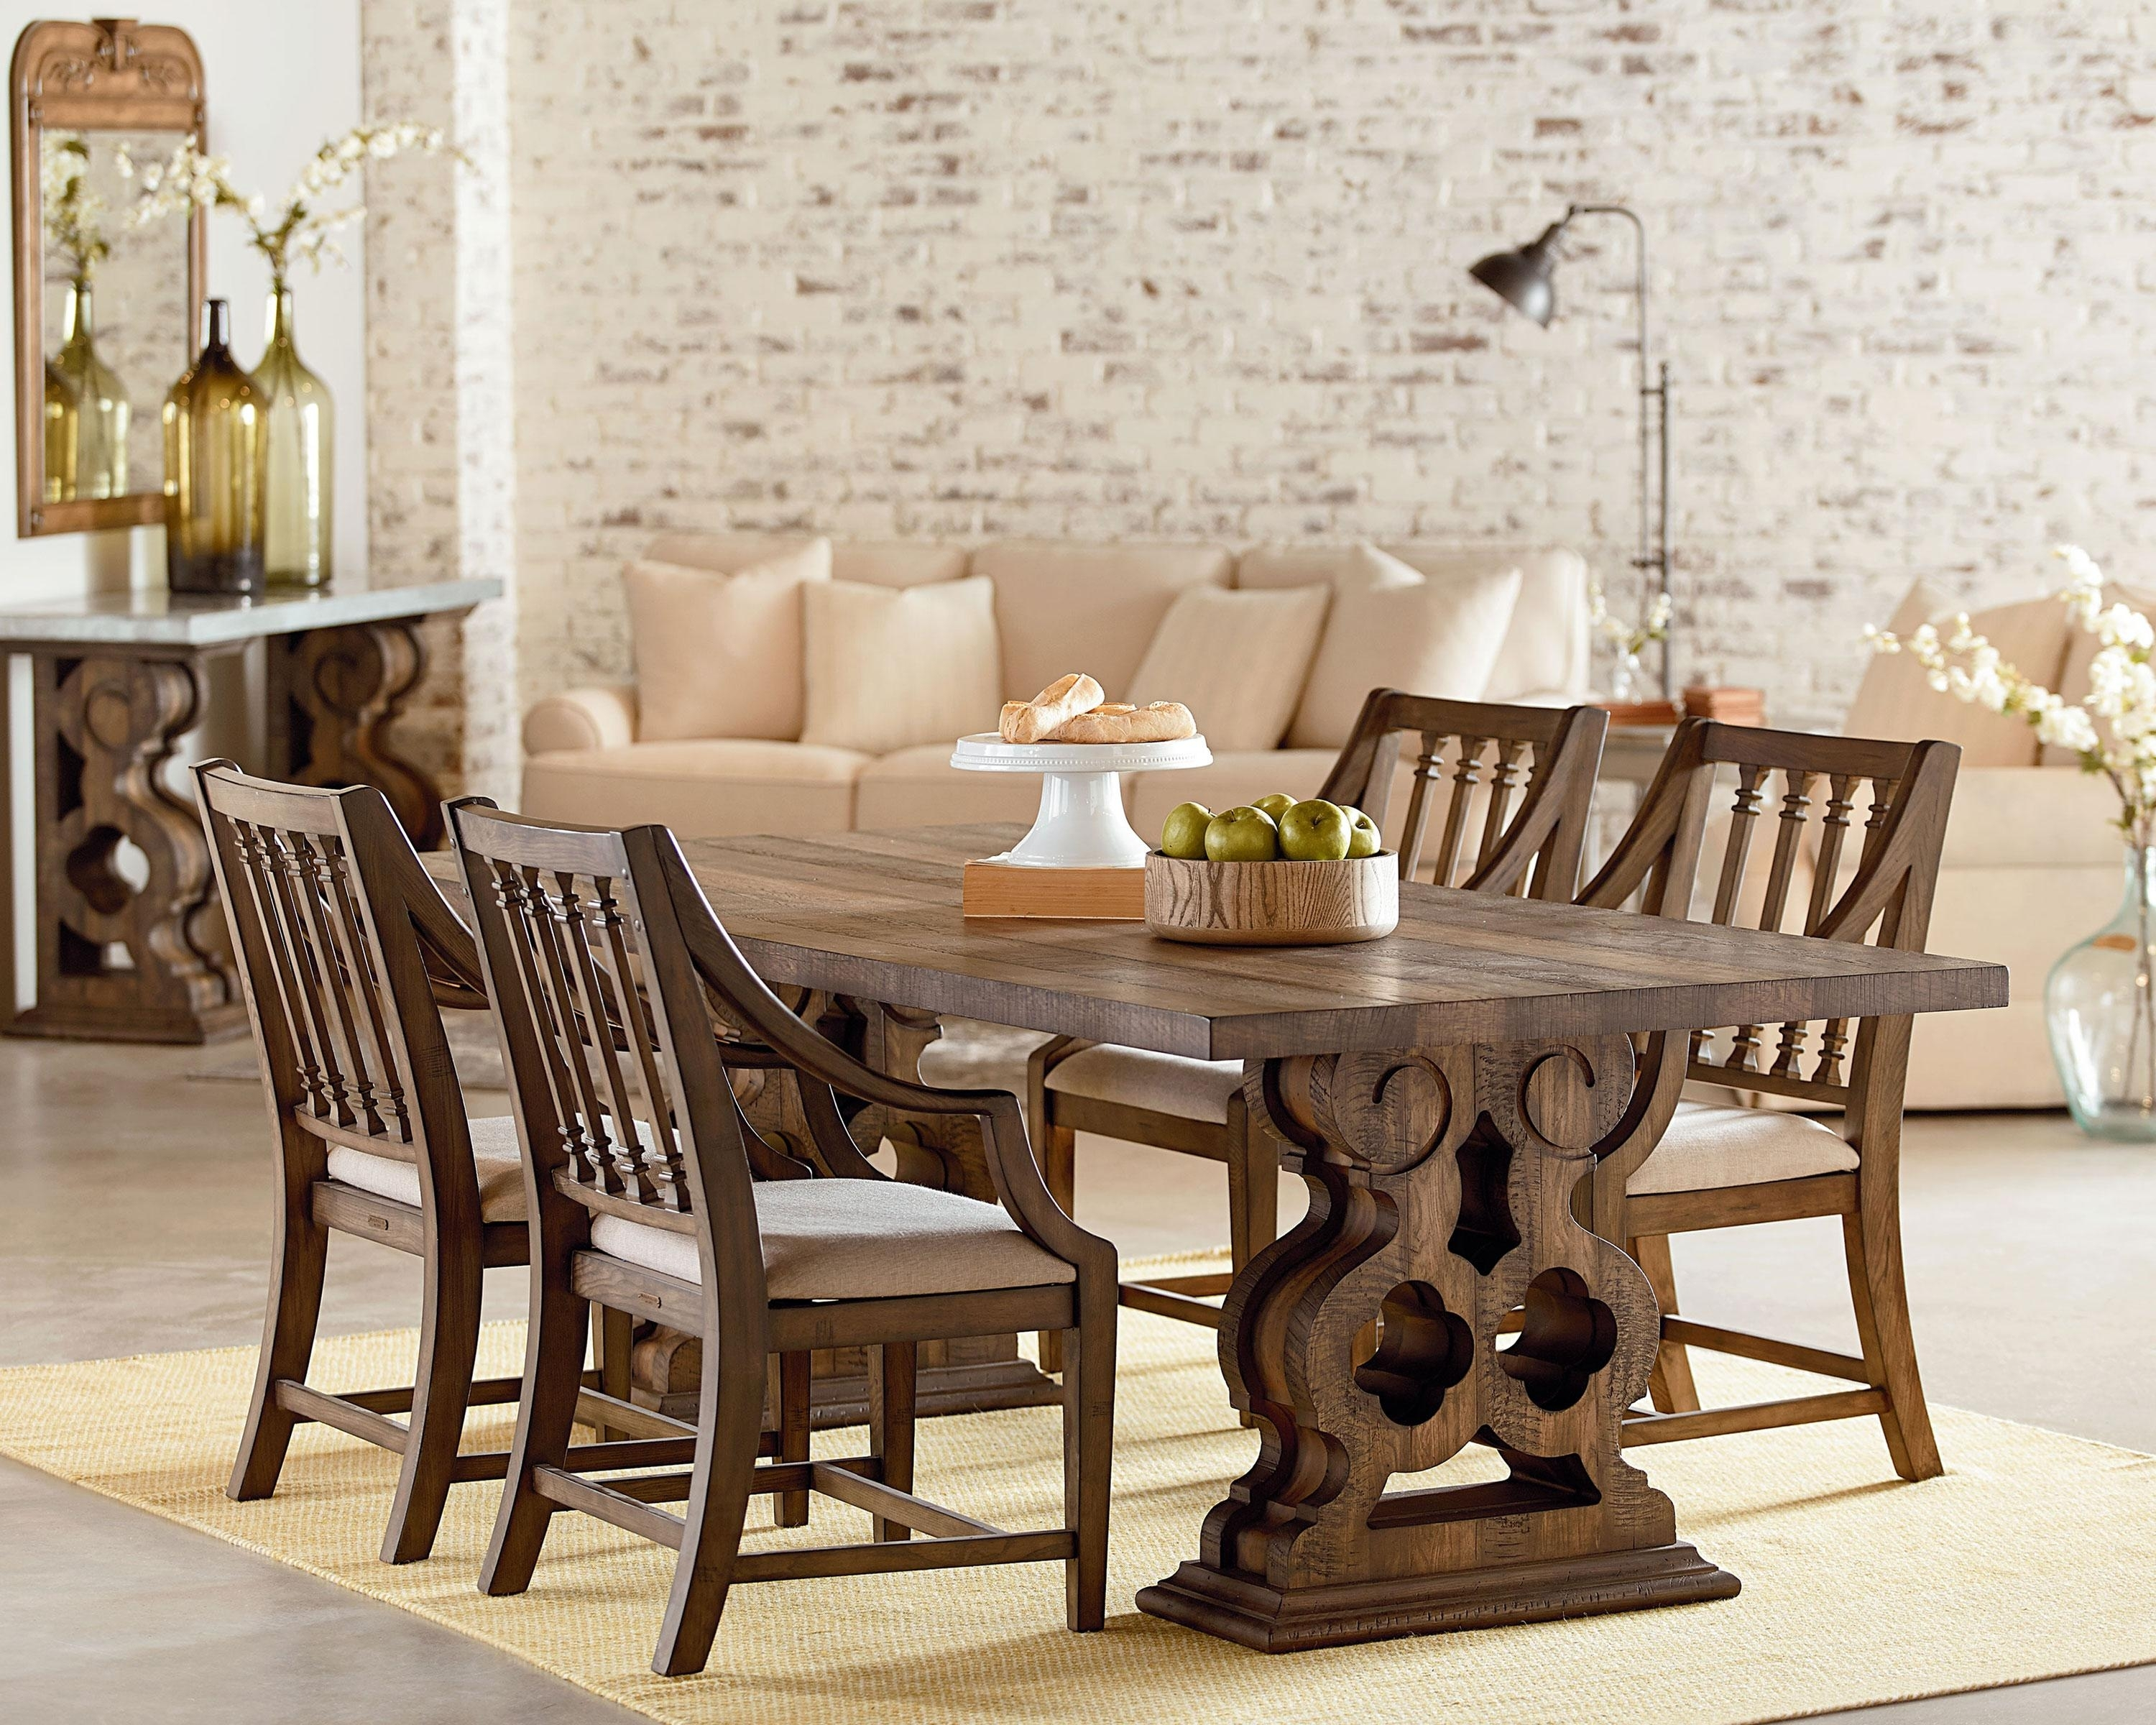 Double Pedestal + Revival – Magnolia Home Within Trendy Magnolia Home Revival Side Chairs (#2 of 20)